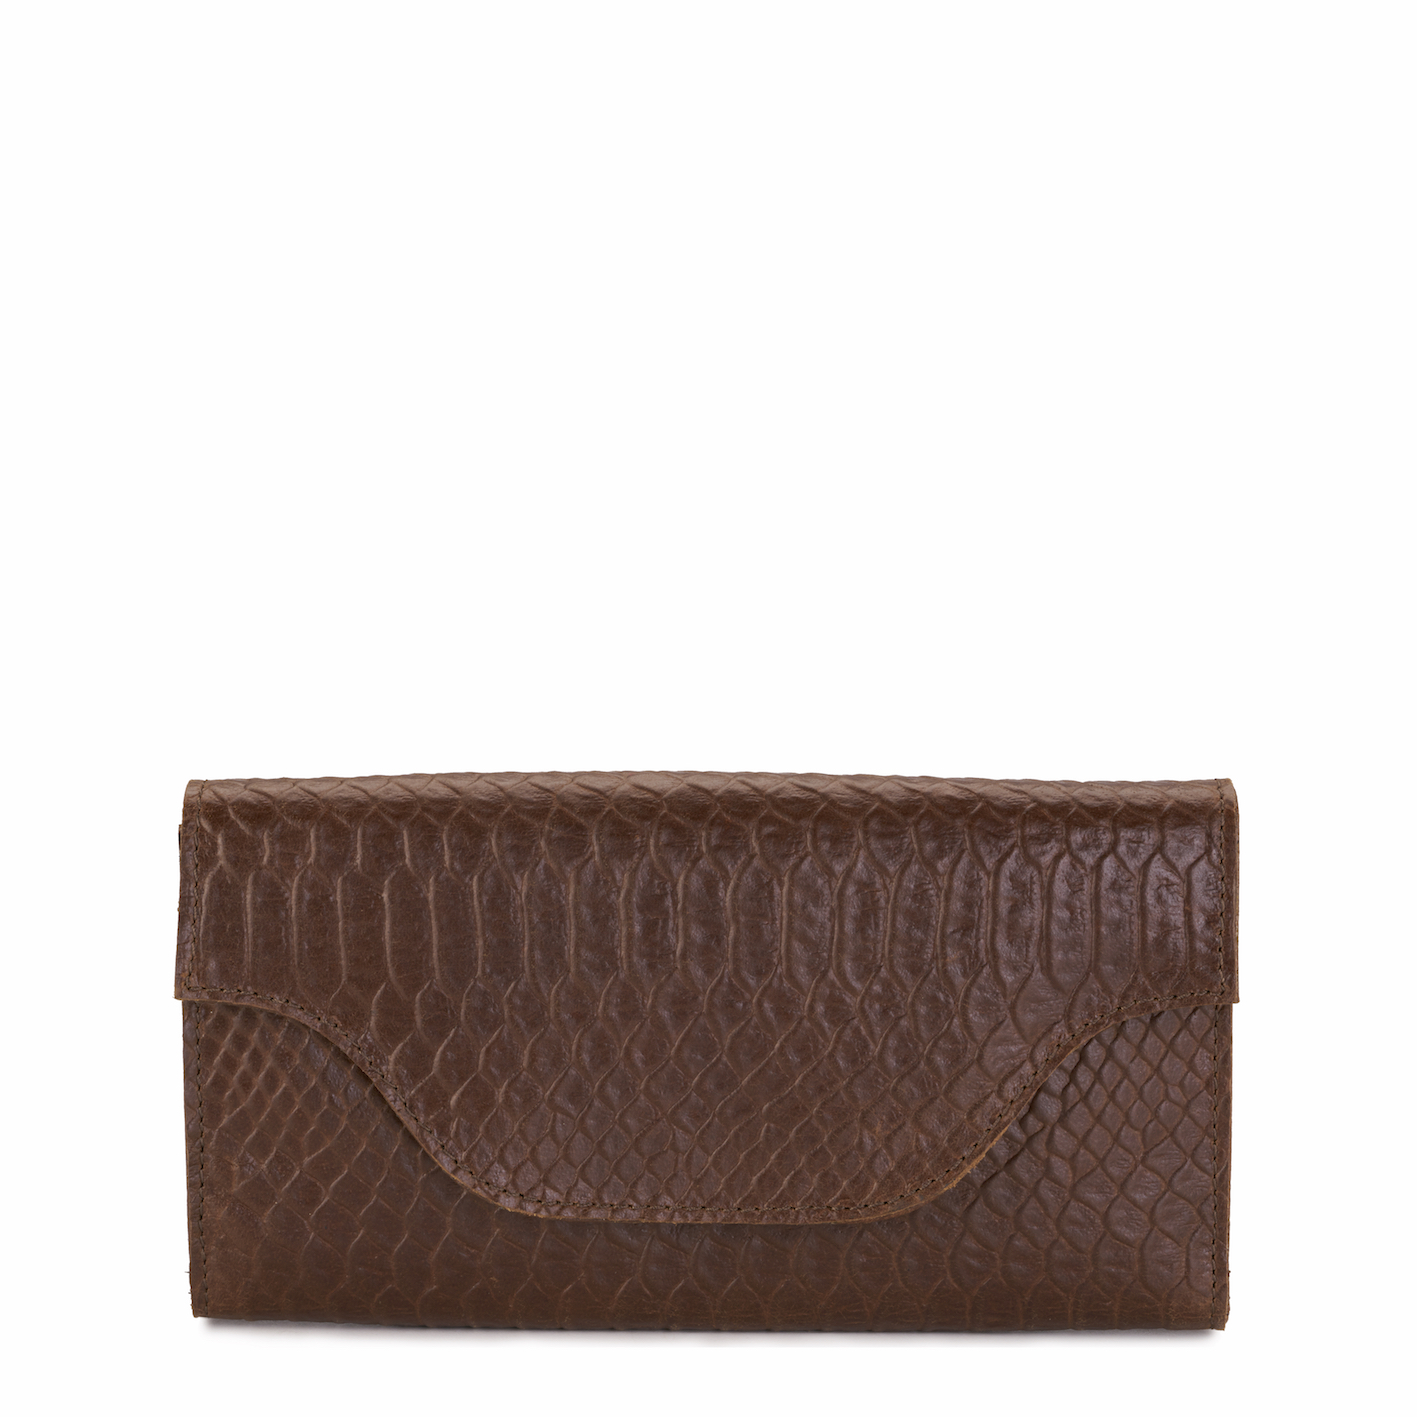 MY CARRY BAG Wallet – anaconda brandy